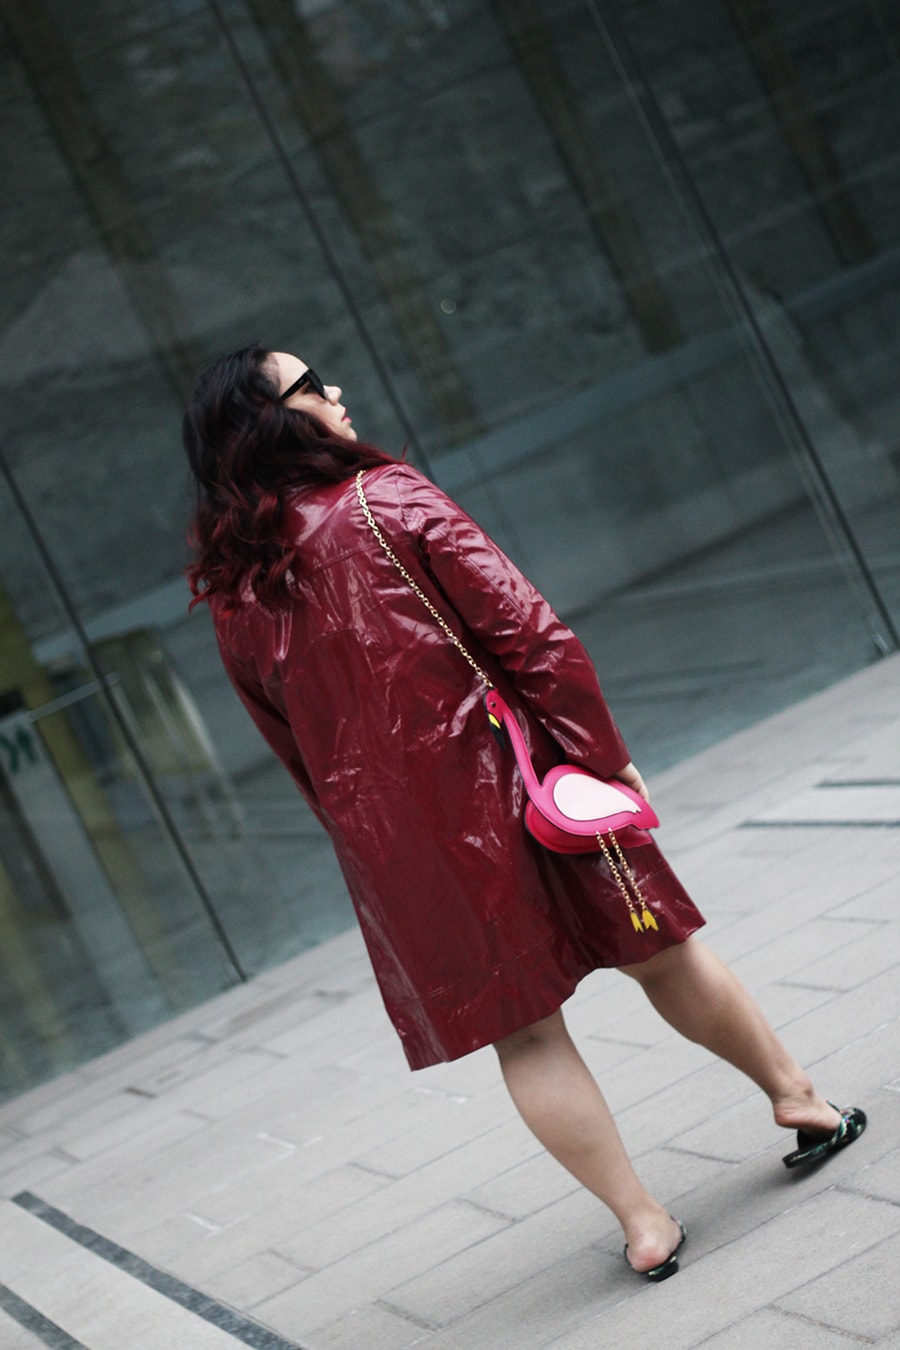 Lady in red - red outfit for autumn - golden strokes - luisa verdee